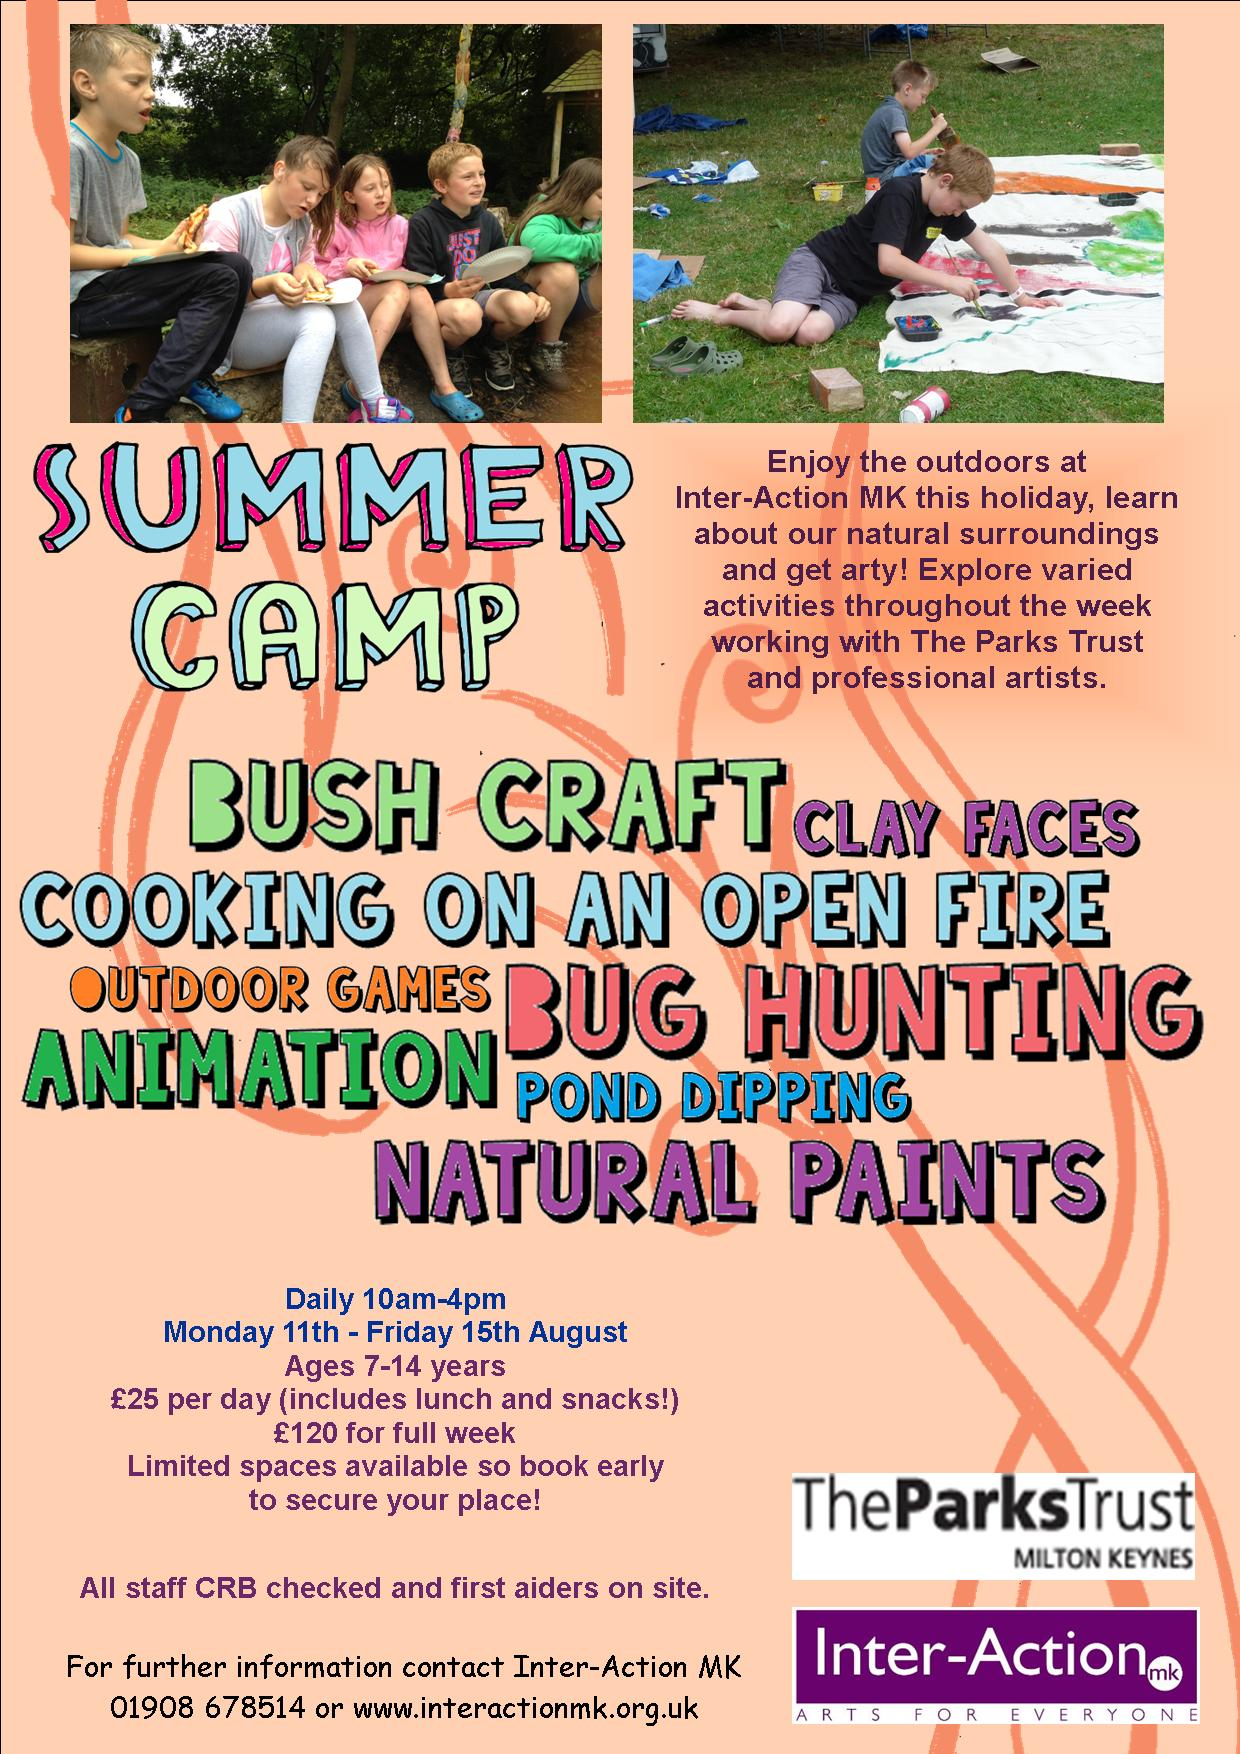 Summer Camp Flyer 2014